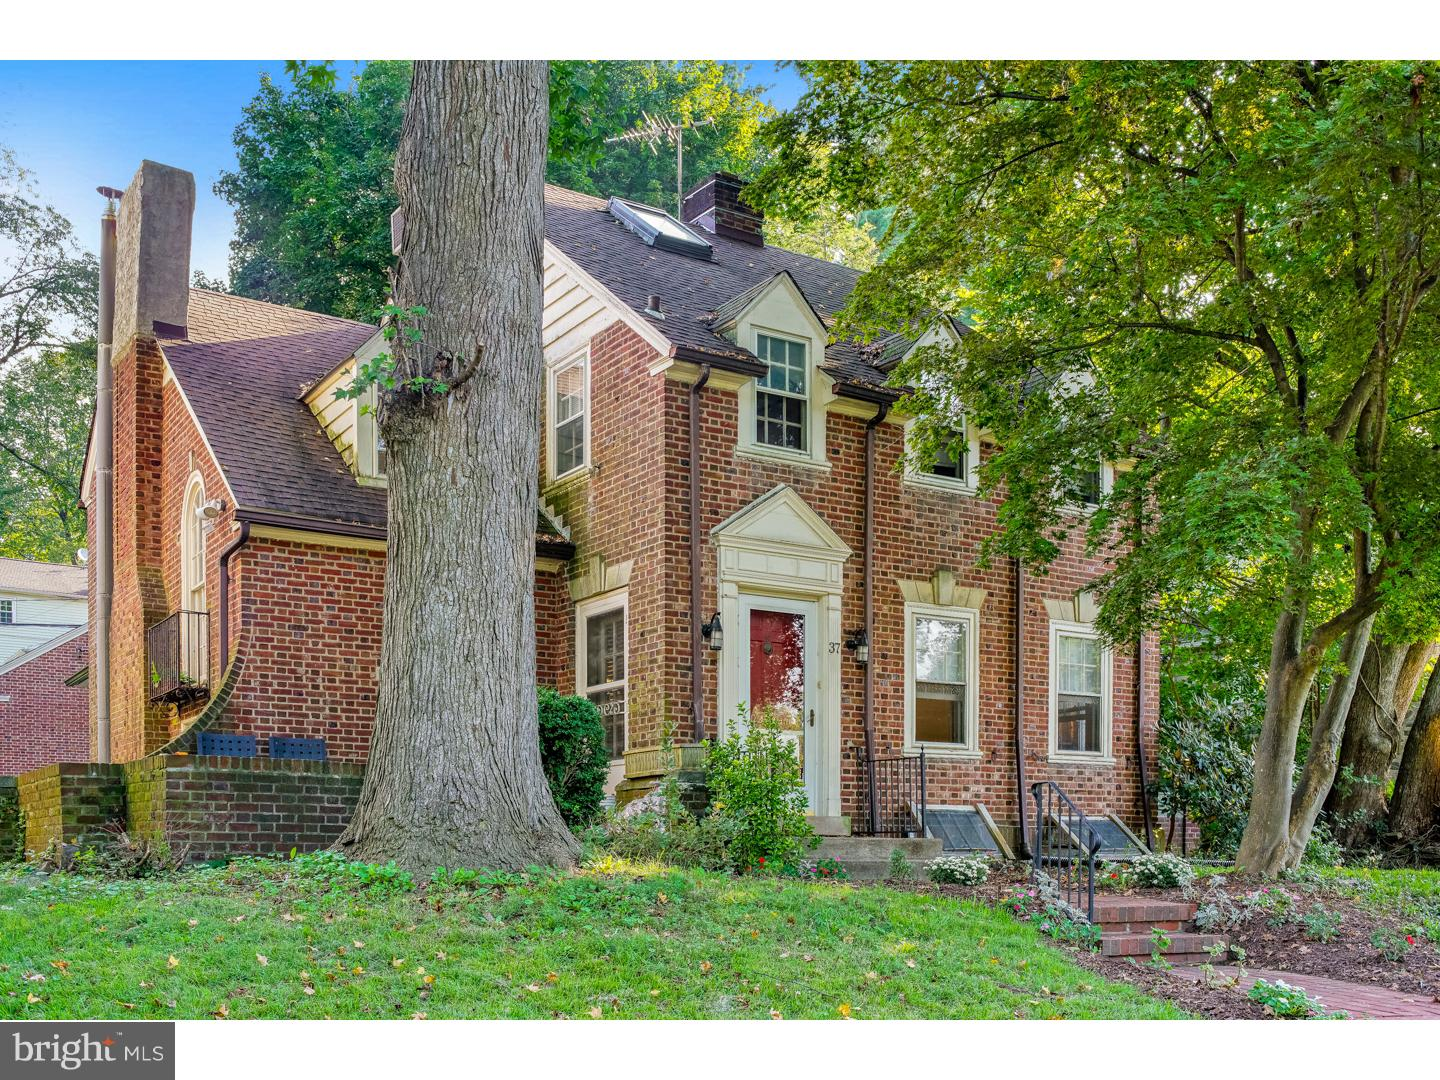 37 Overbrook Parkway Wynnewood, PA 19096